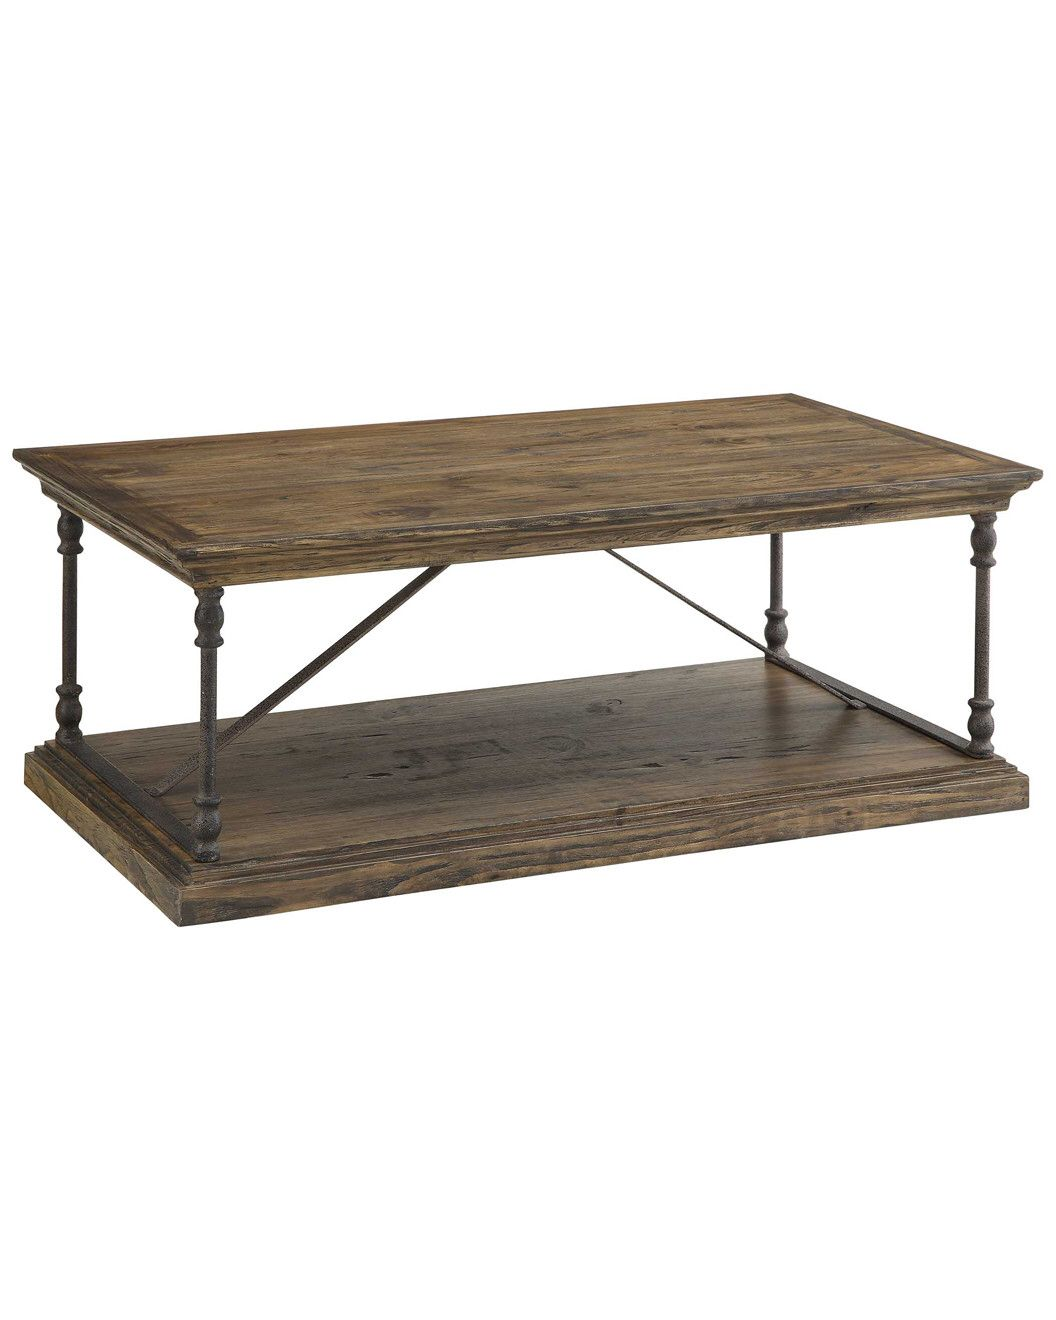 Spotted this Coffee Table on Rue La La. Shop (quickly!).